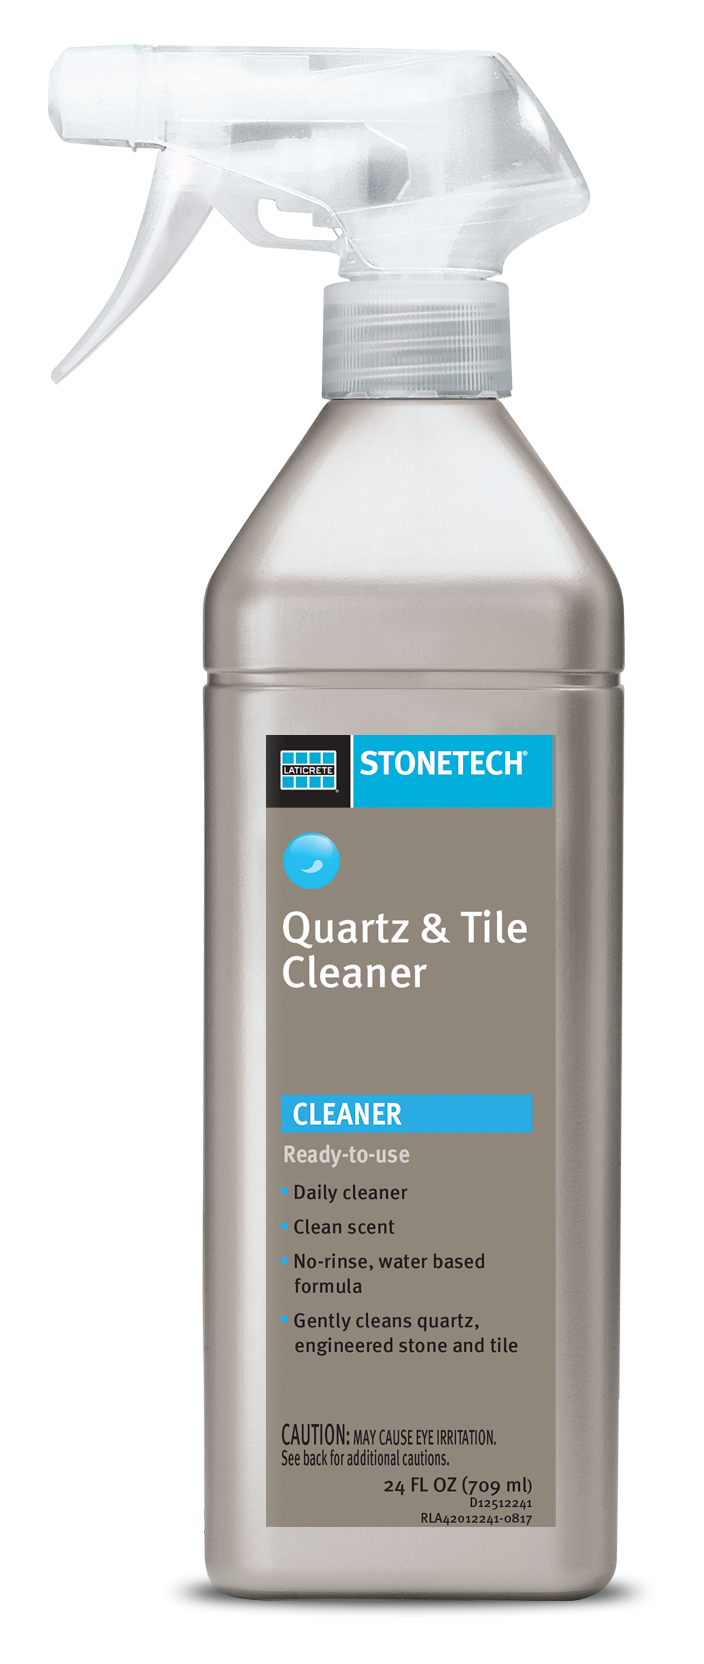 STONETECH Quartz & Tile Cleaner